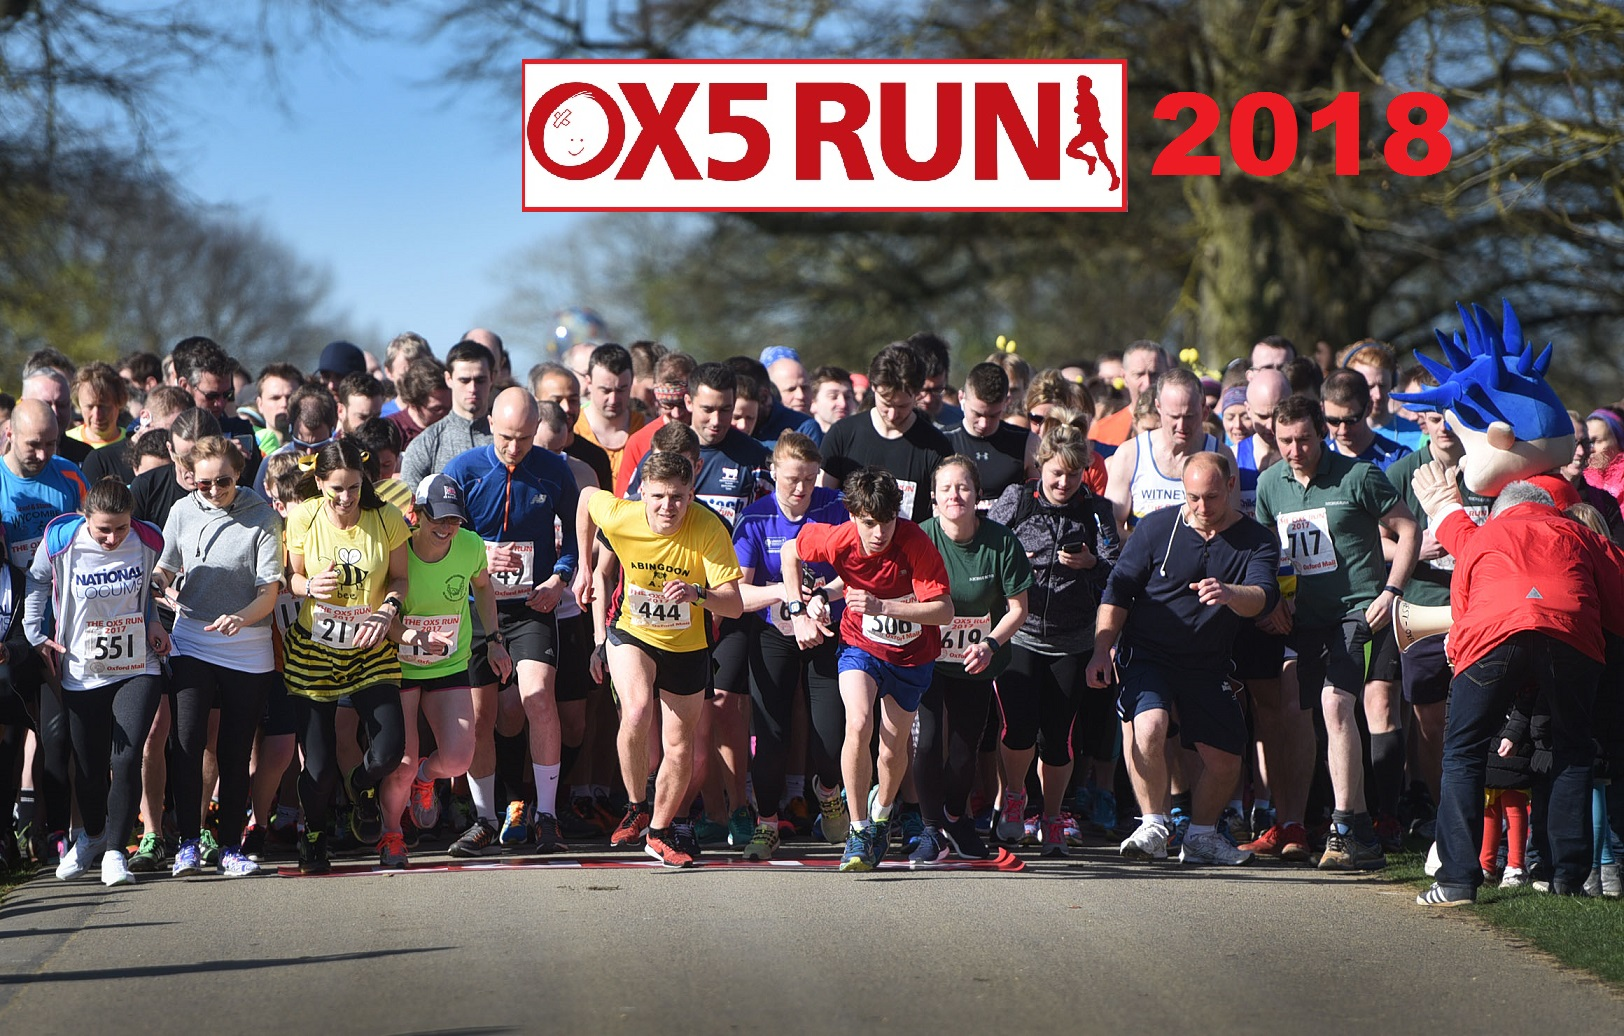 OX5 Run nominated for national award - we need your vote!